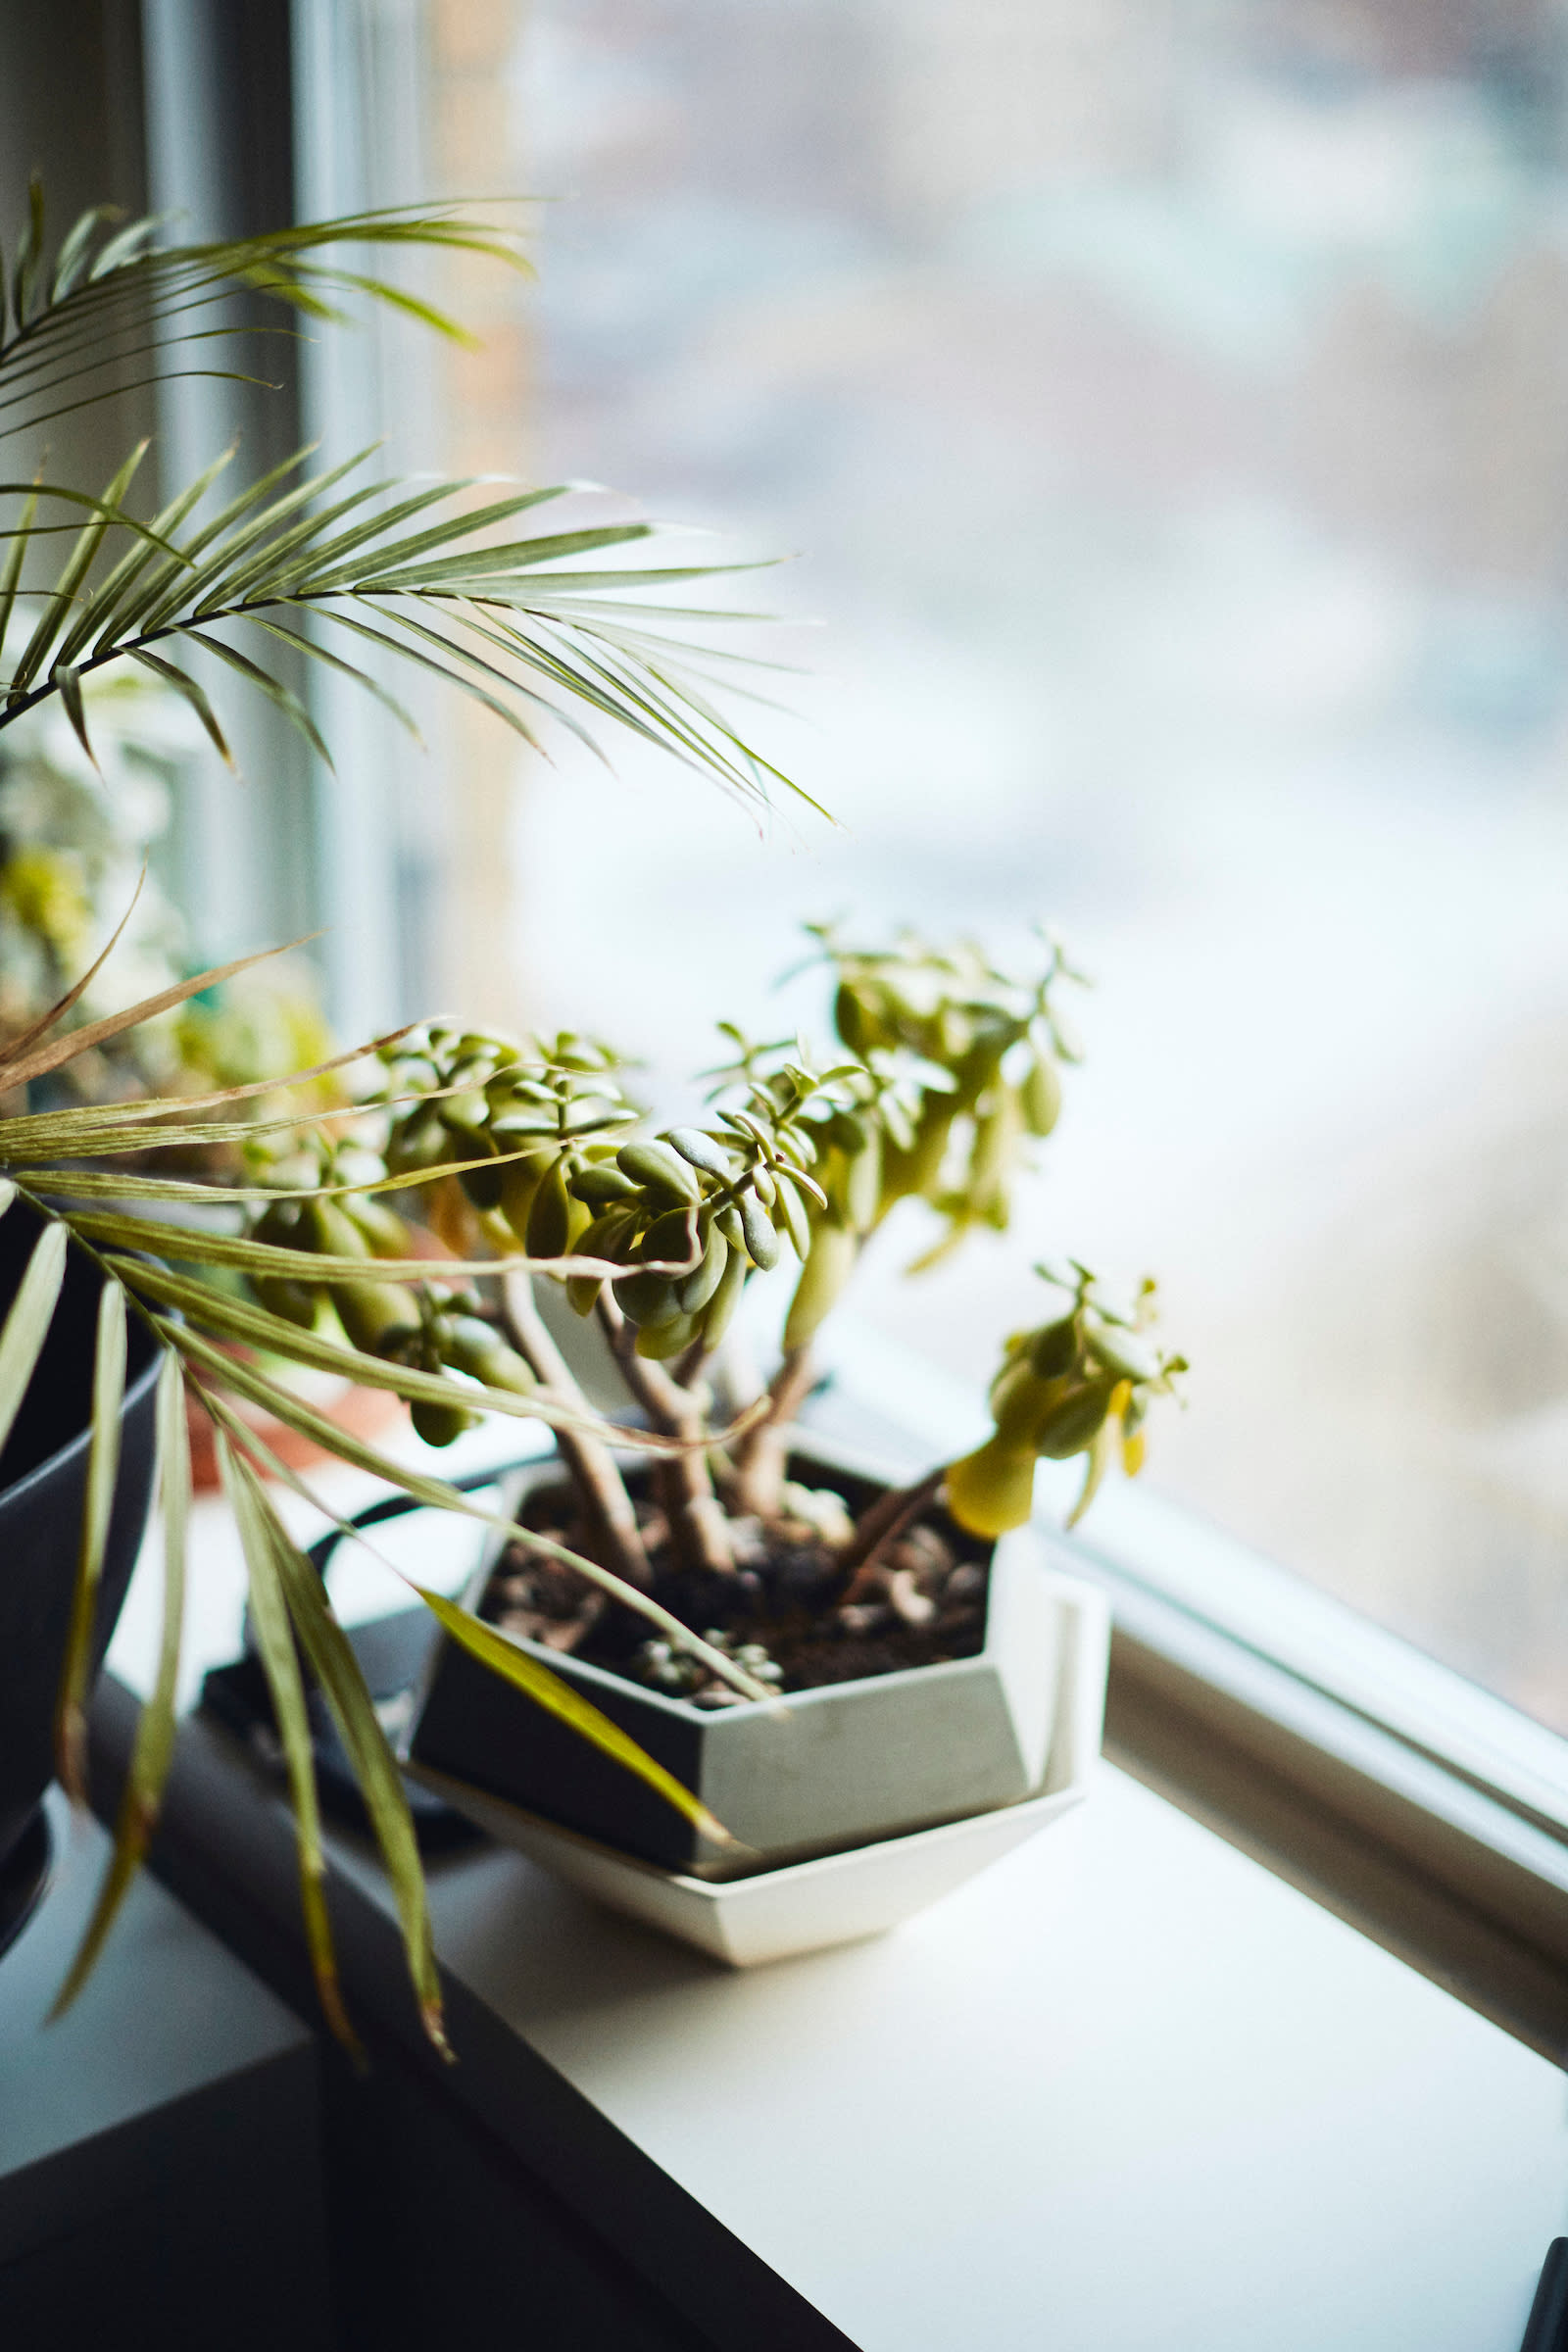 a plant on a windowsill at Apartment Therapy